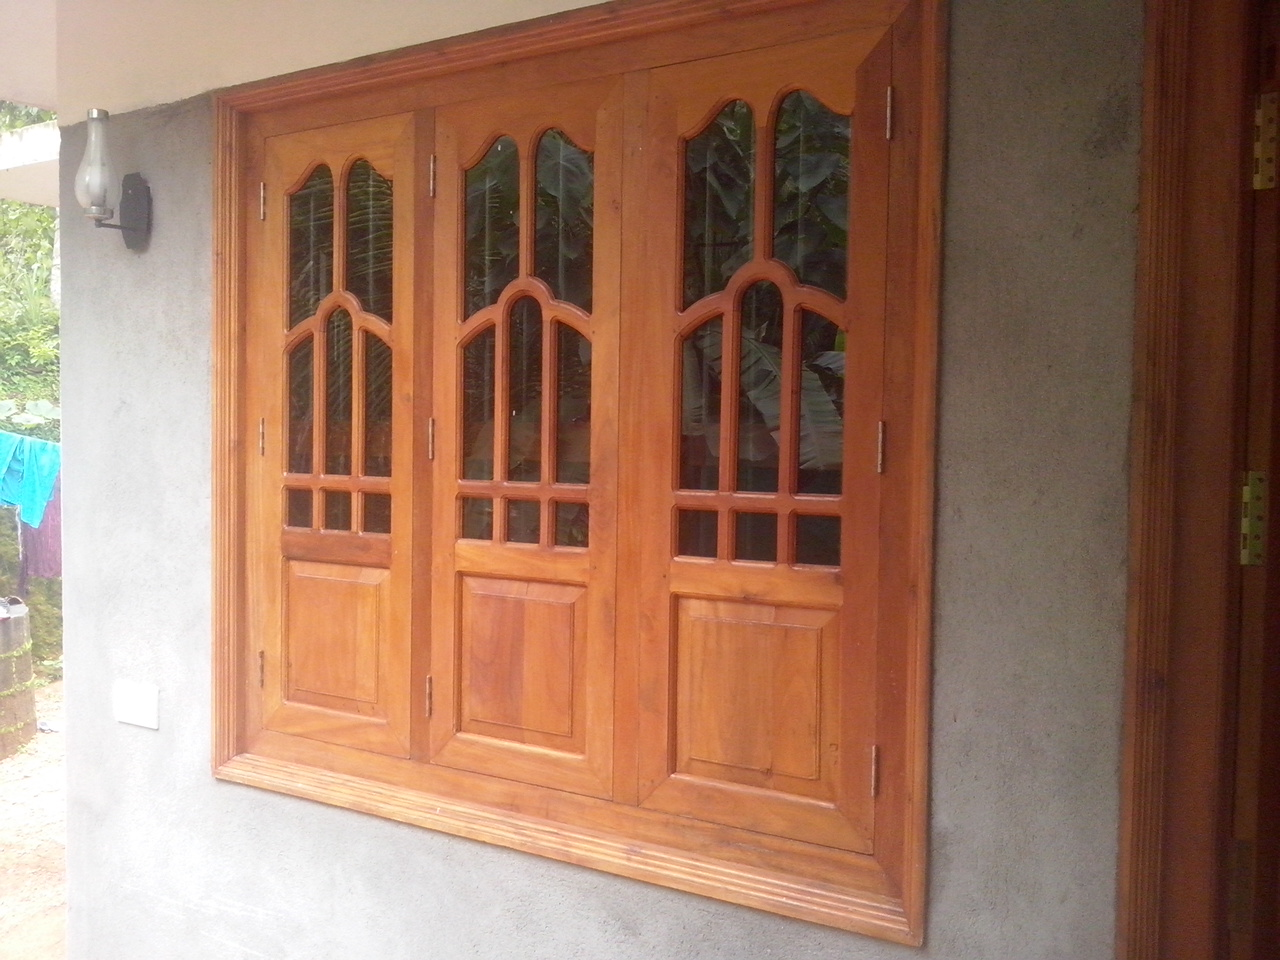 Bavas wood works kerala style wooden window door designs for House front window design